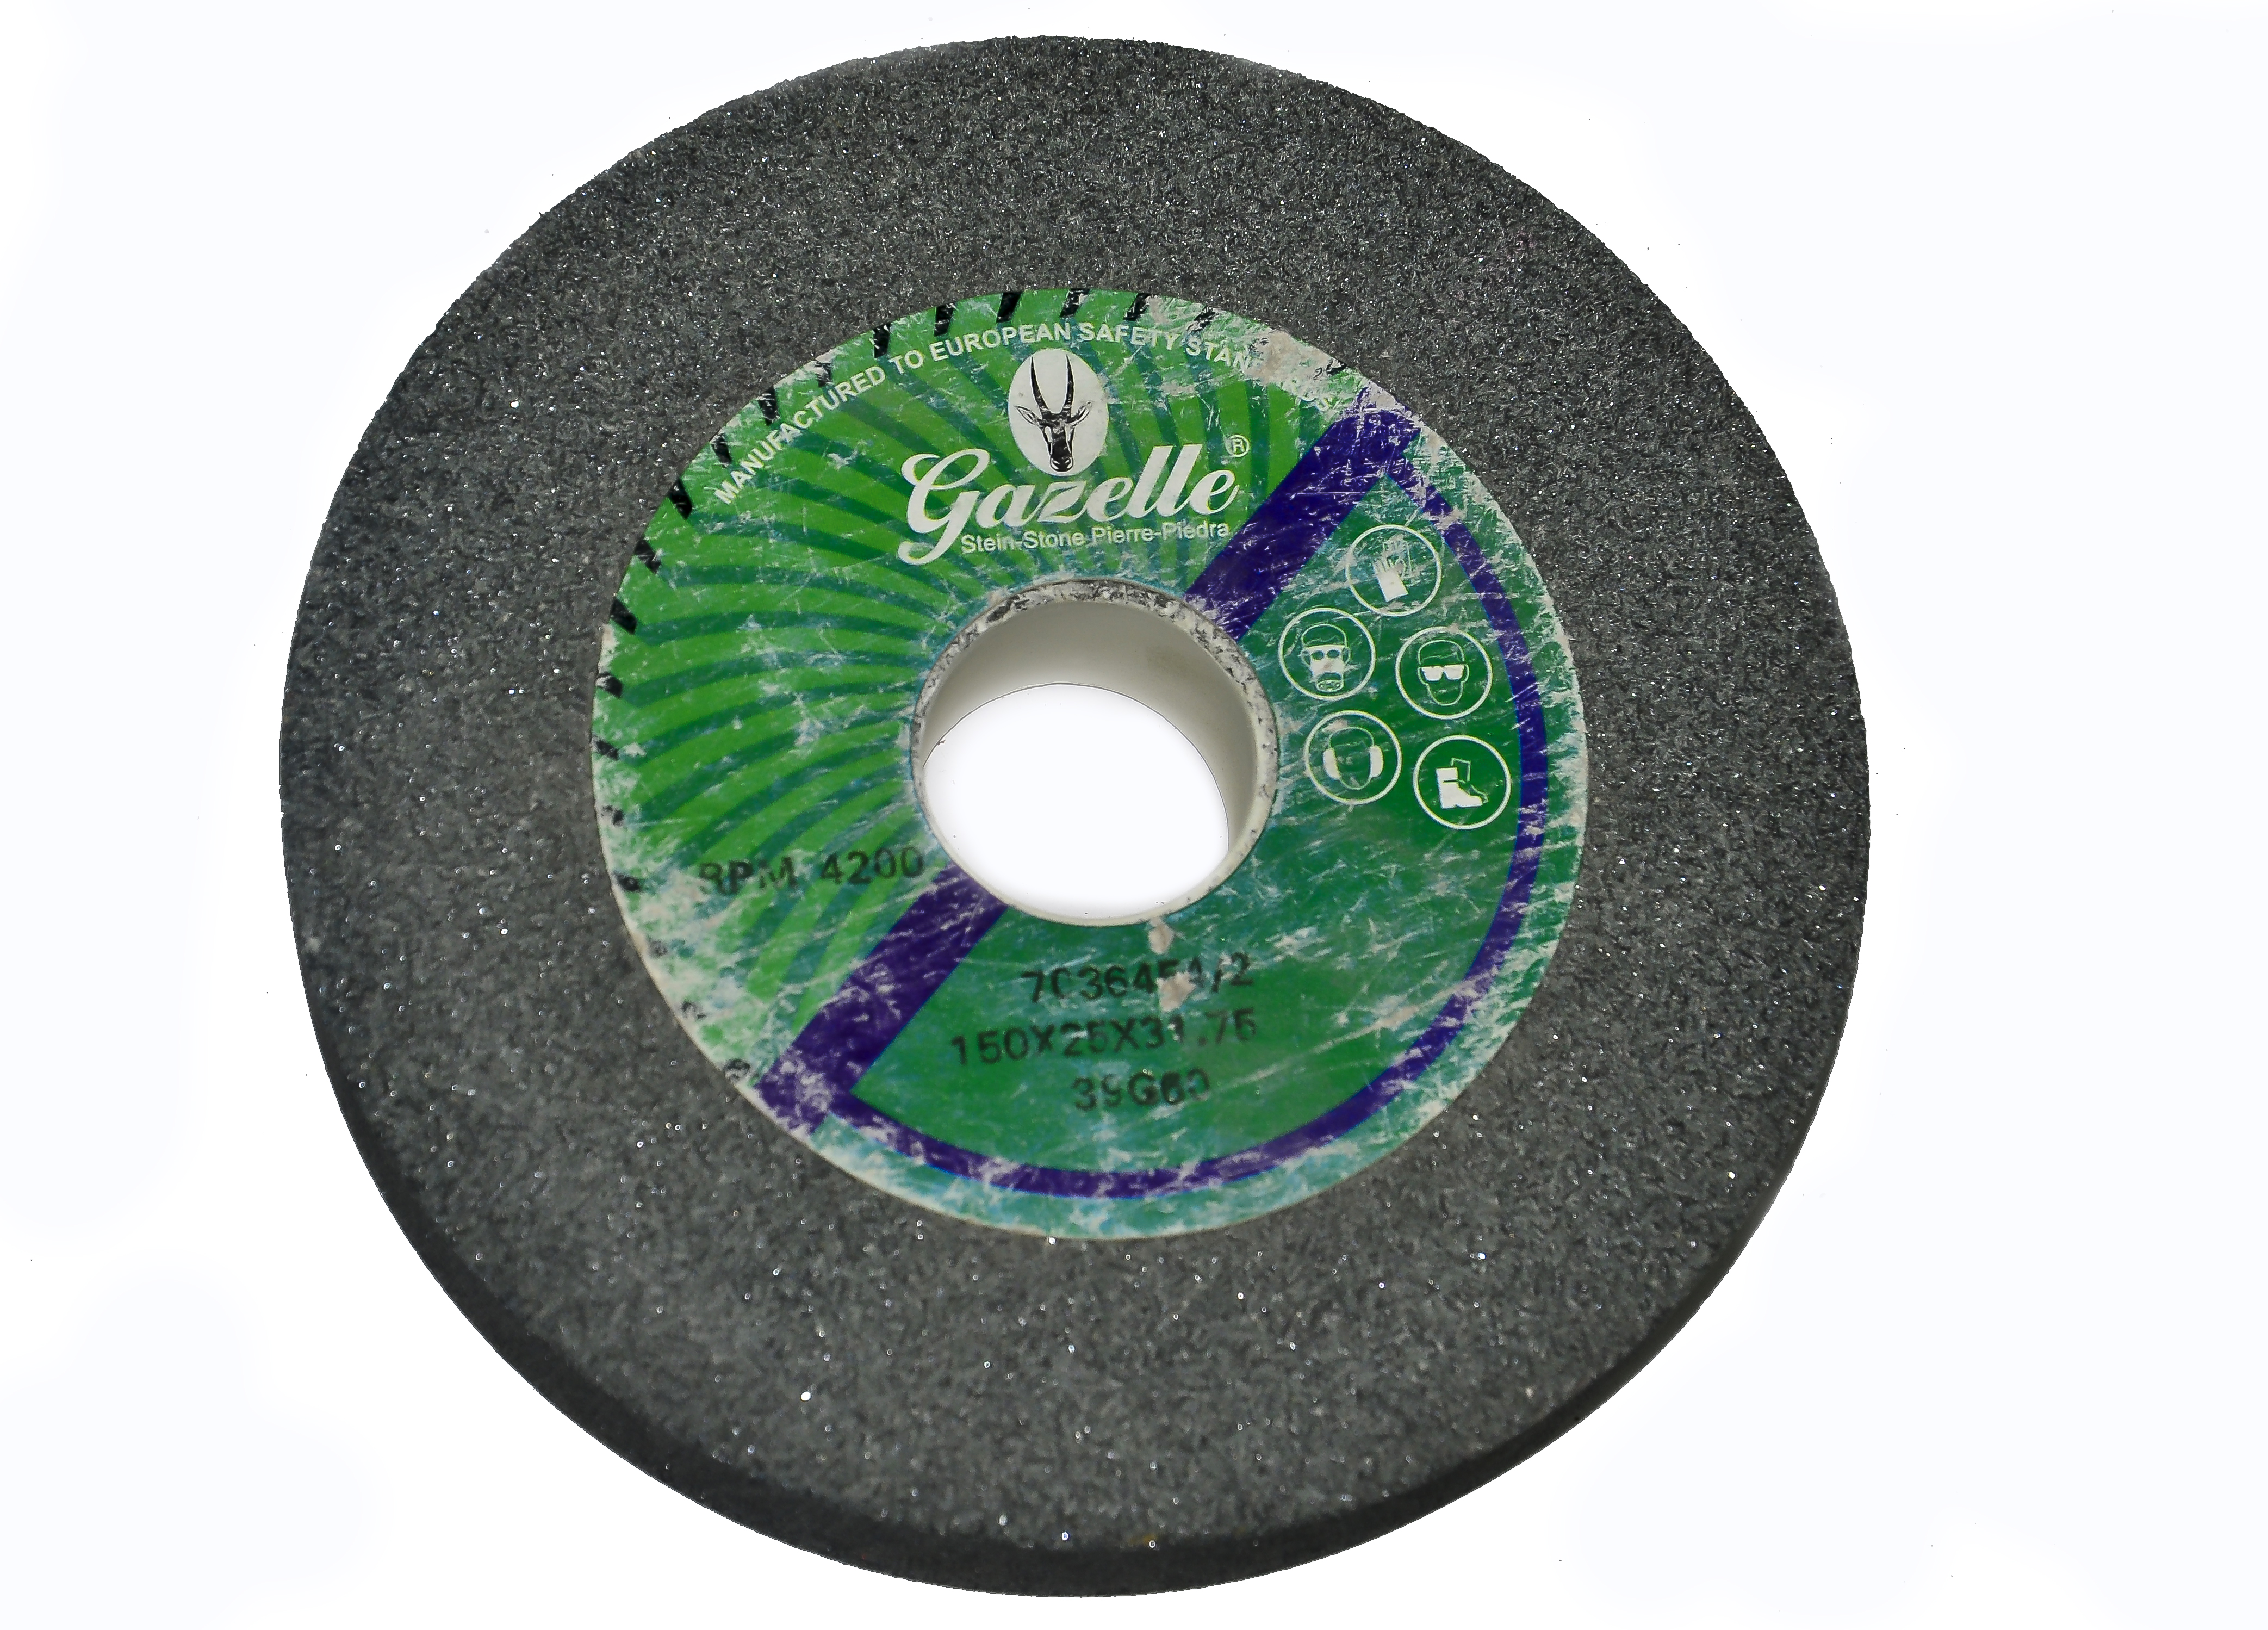 GAZELLE GAZ-15025-60B - Bench Grinding Wheels – Aluminium Oxide 150 x 25 x 31.75mm Medium